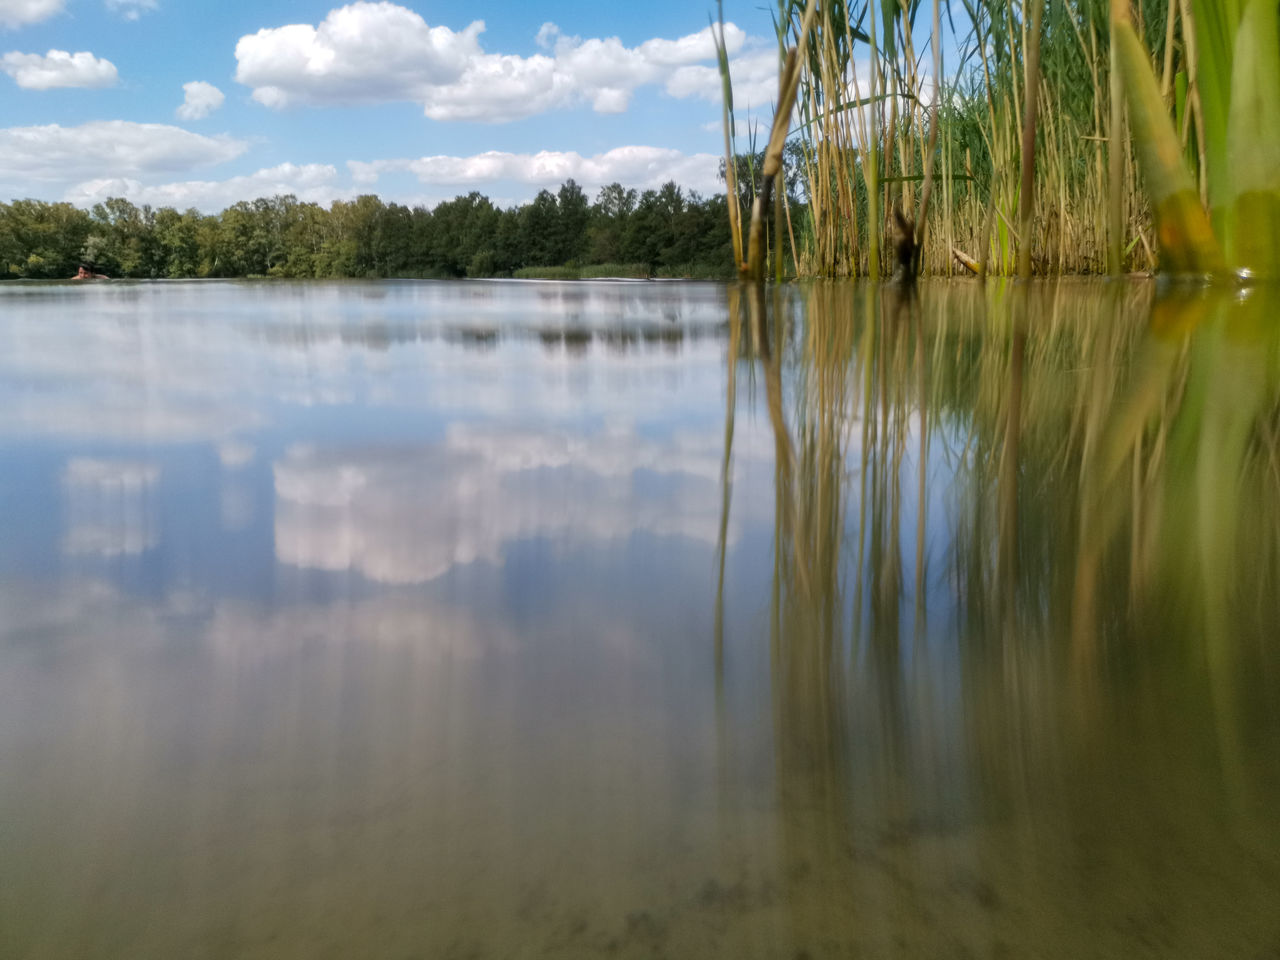 water, reflection, lake, tranquility, tree, plant, sky, beauty in nature, tranquil scene, waterfront, scenics - nature, no people, nature, day, growth, cloud - sky, outdoors, non-urban scene, green color, reflection lake